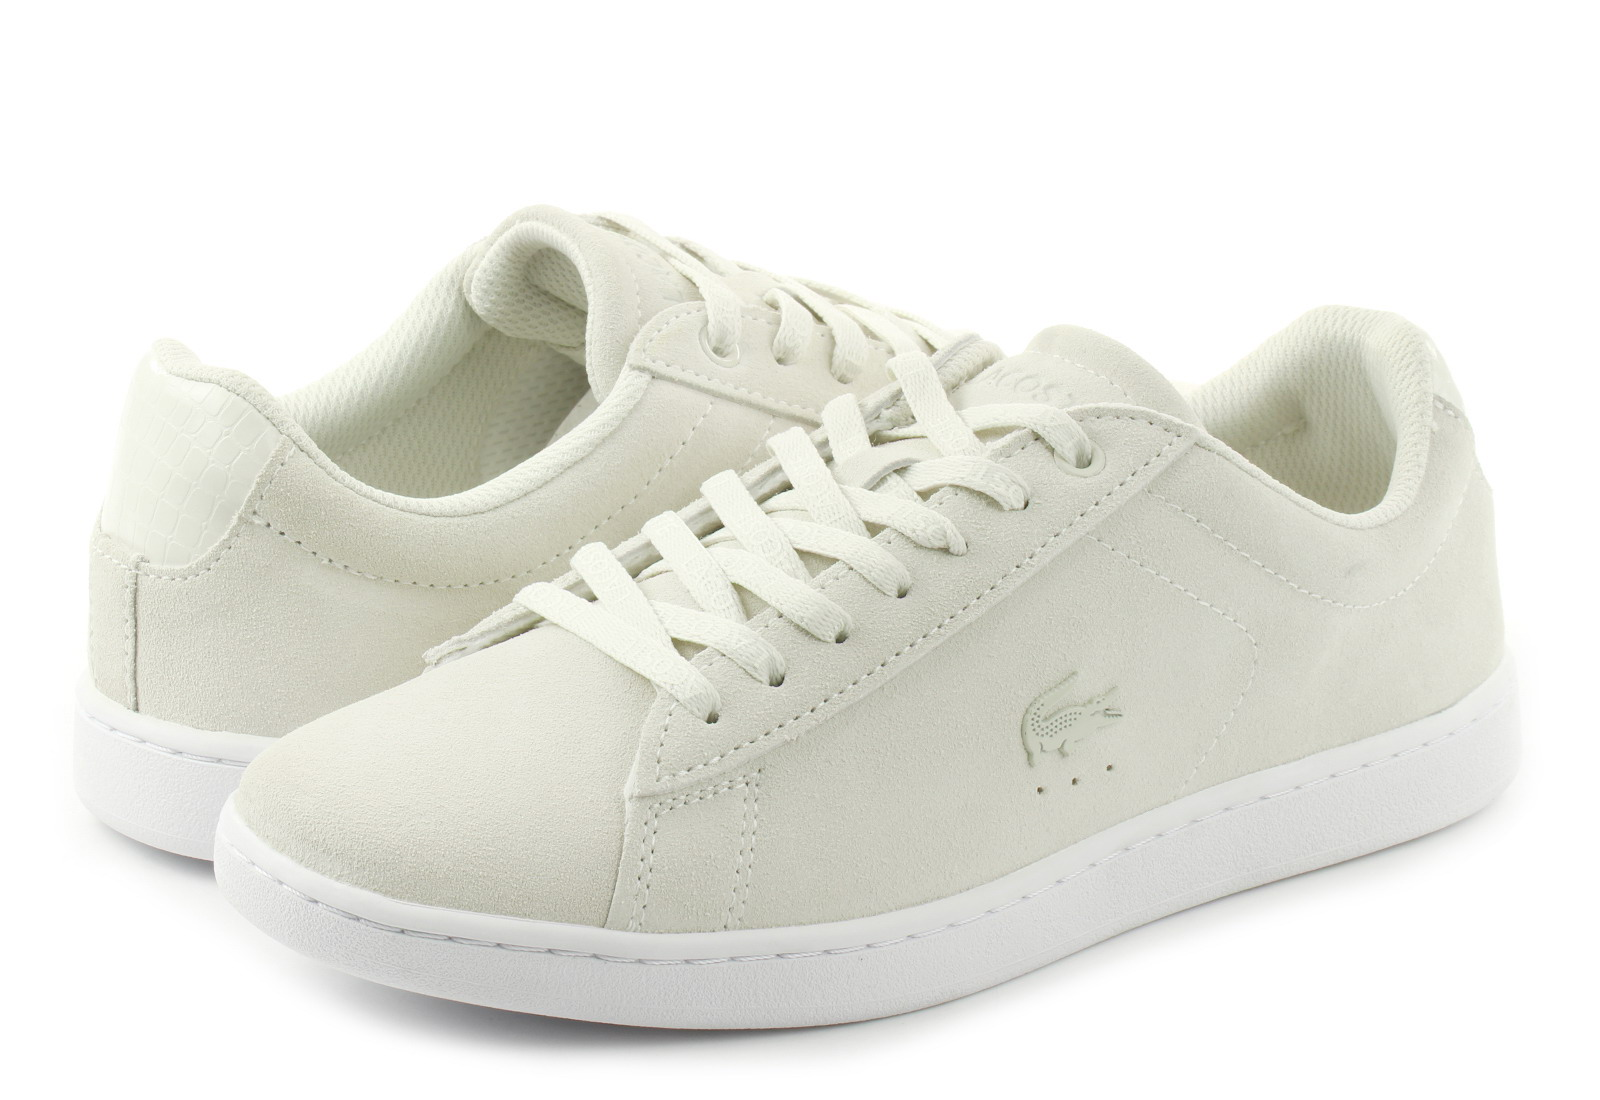 Lacoste Cipő - Carnaby Evo - 184SPW0045-098 - Office Shoes ... c2b740fc75